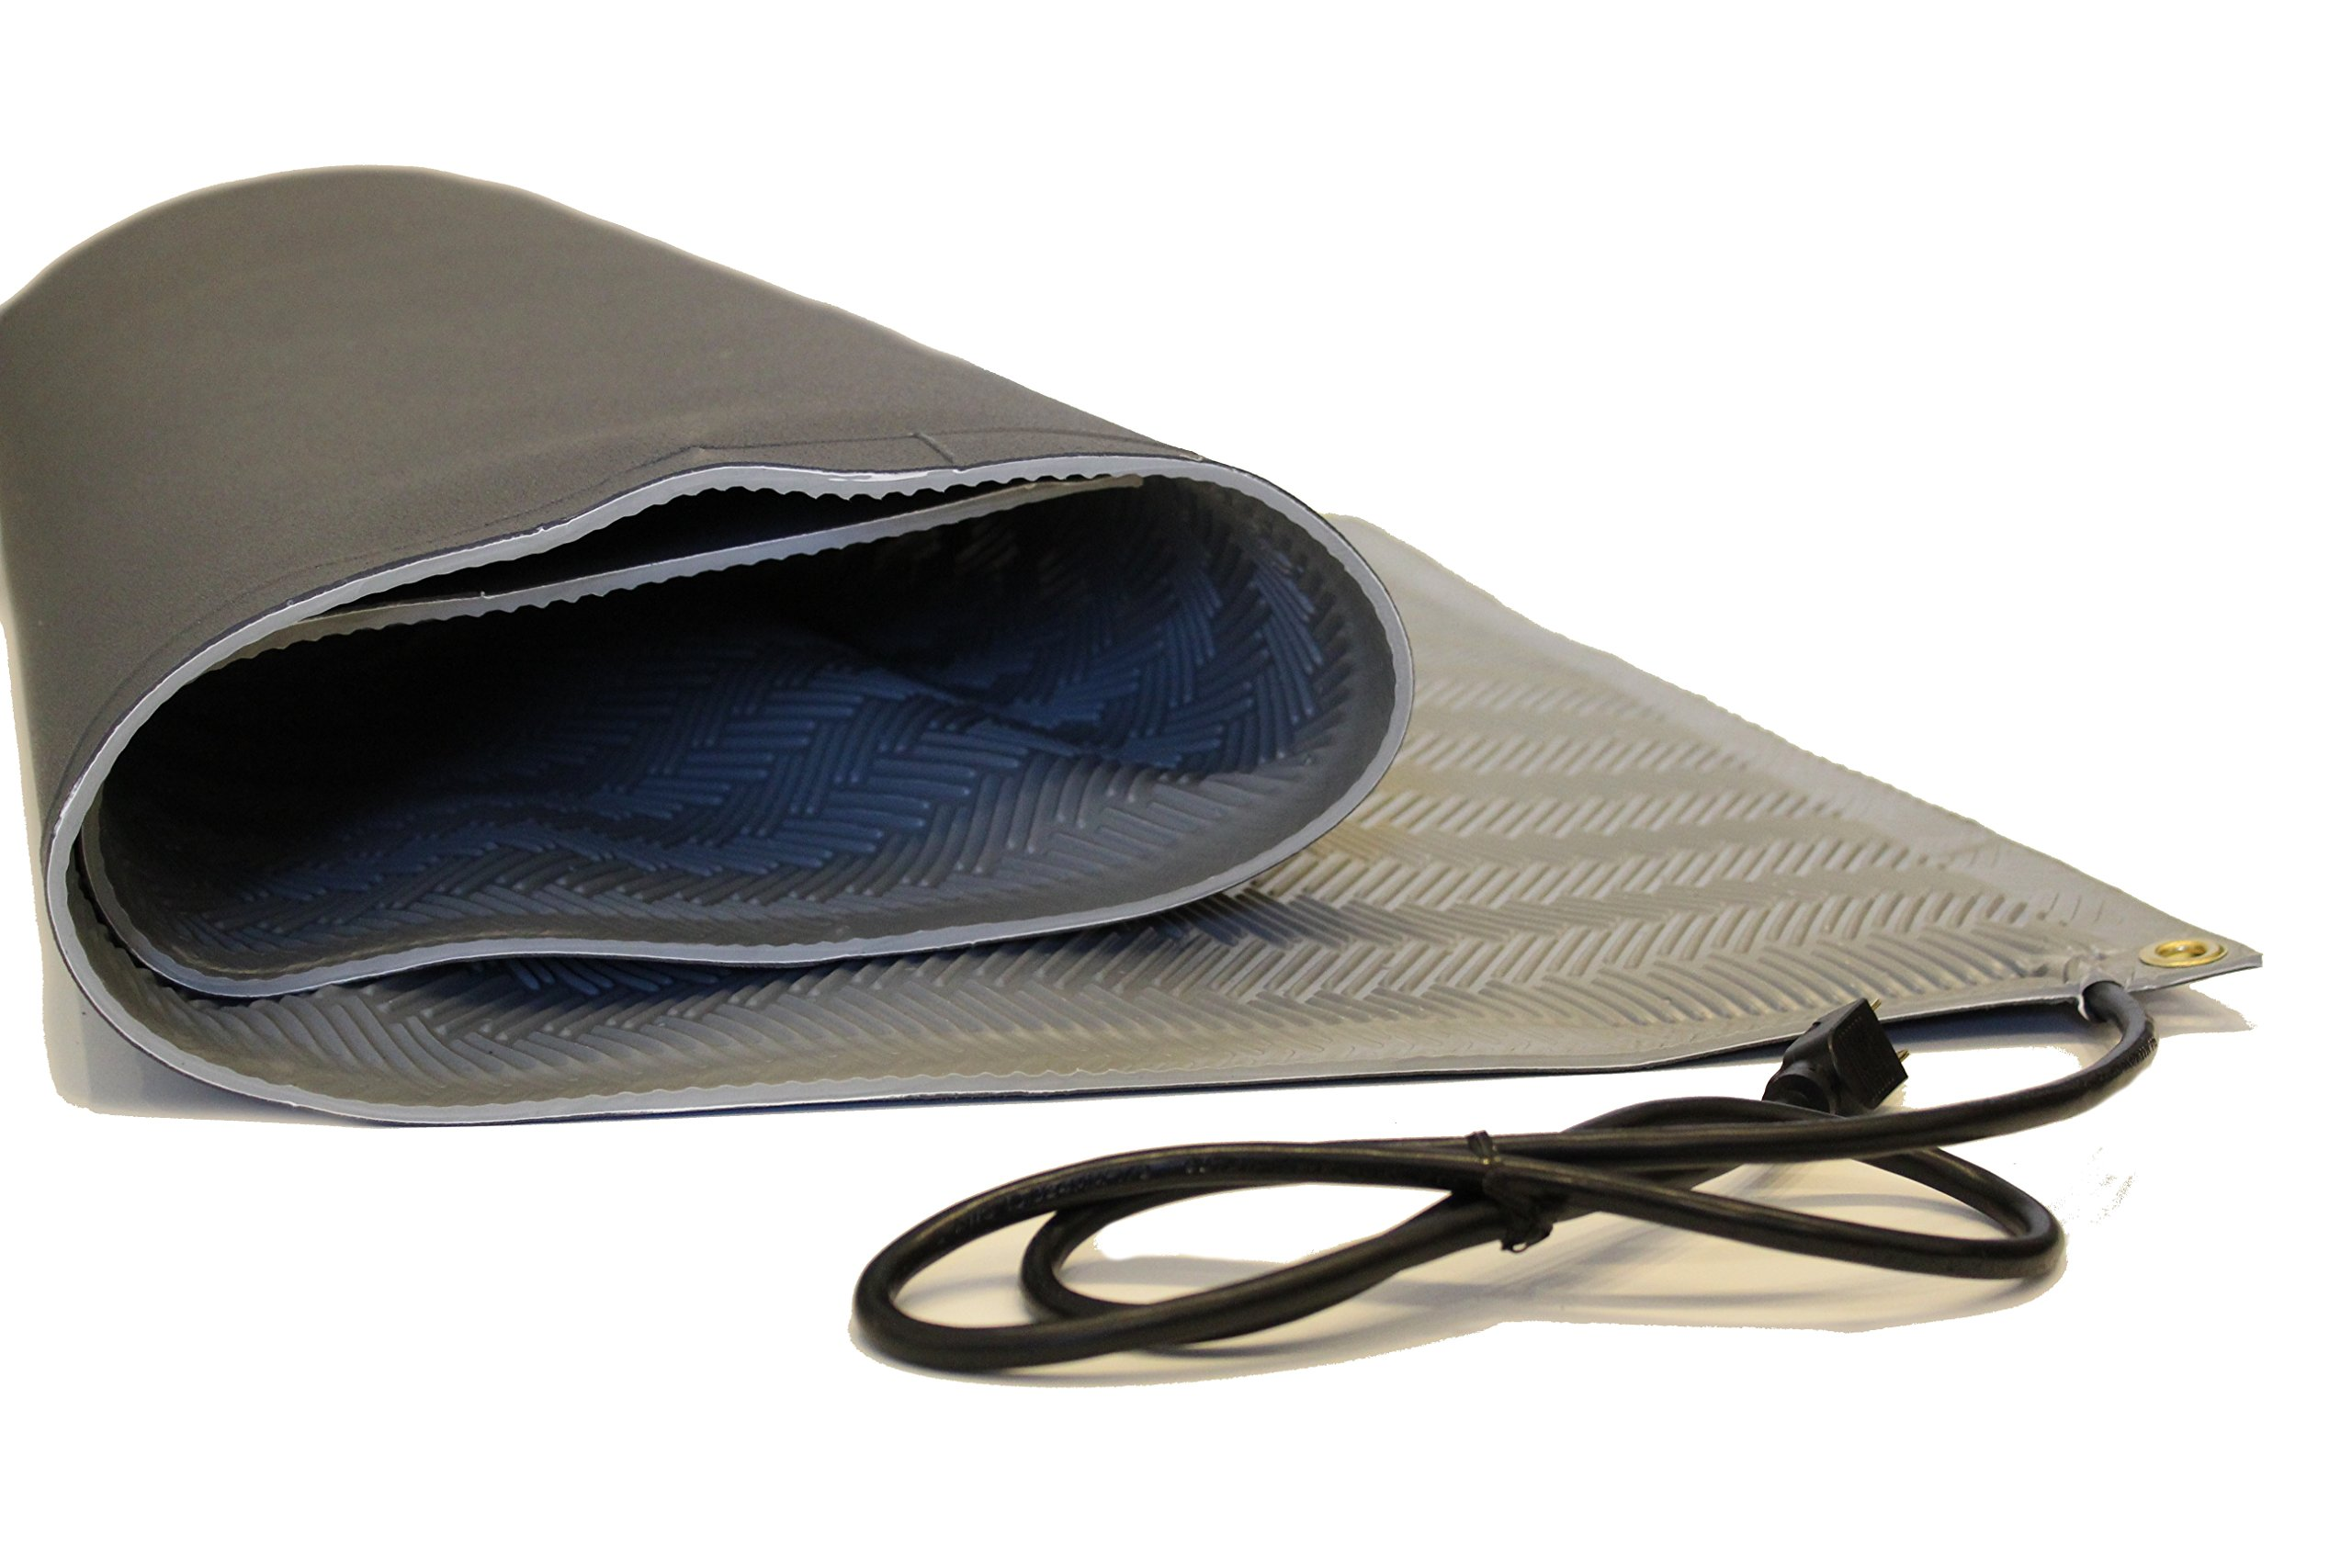 RHS Snow Melting Mat, Anti-Slip Walkway Herringbone Design, Color Gray, Outdoor Mat, Prevents ice Formation, Melts up to 2 inches of Snow per Hour, 120 Volts (30-inches x 4-feet) by Roof Heating Systems